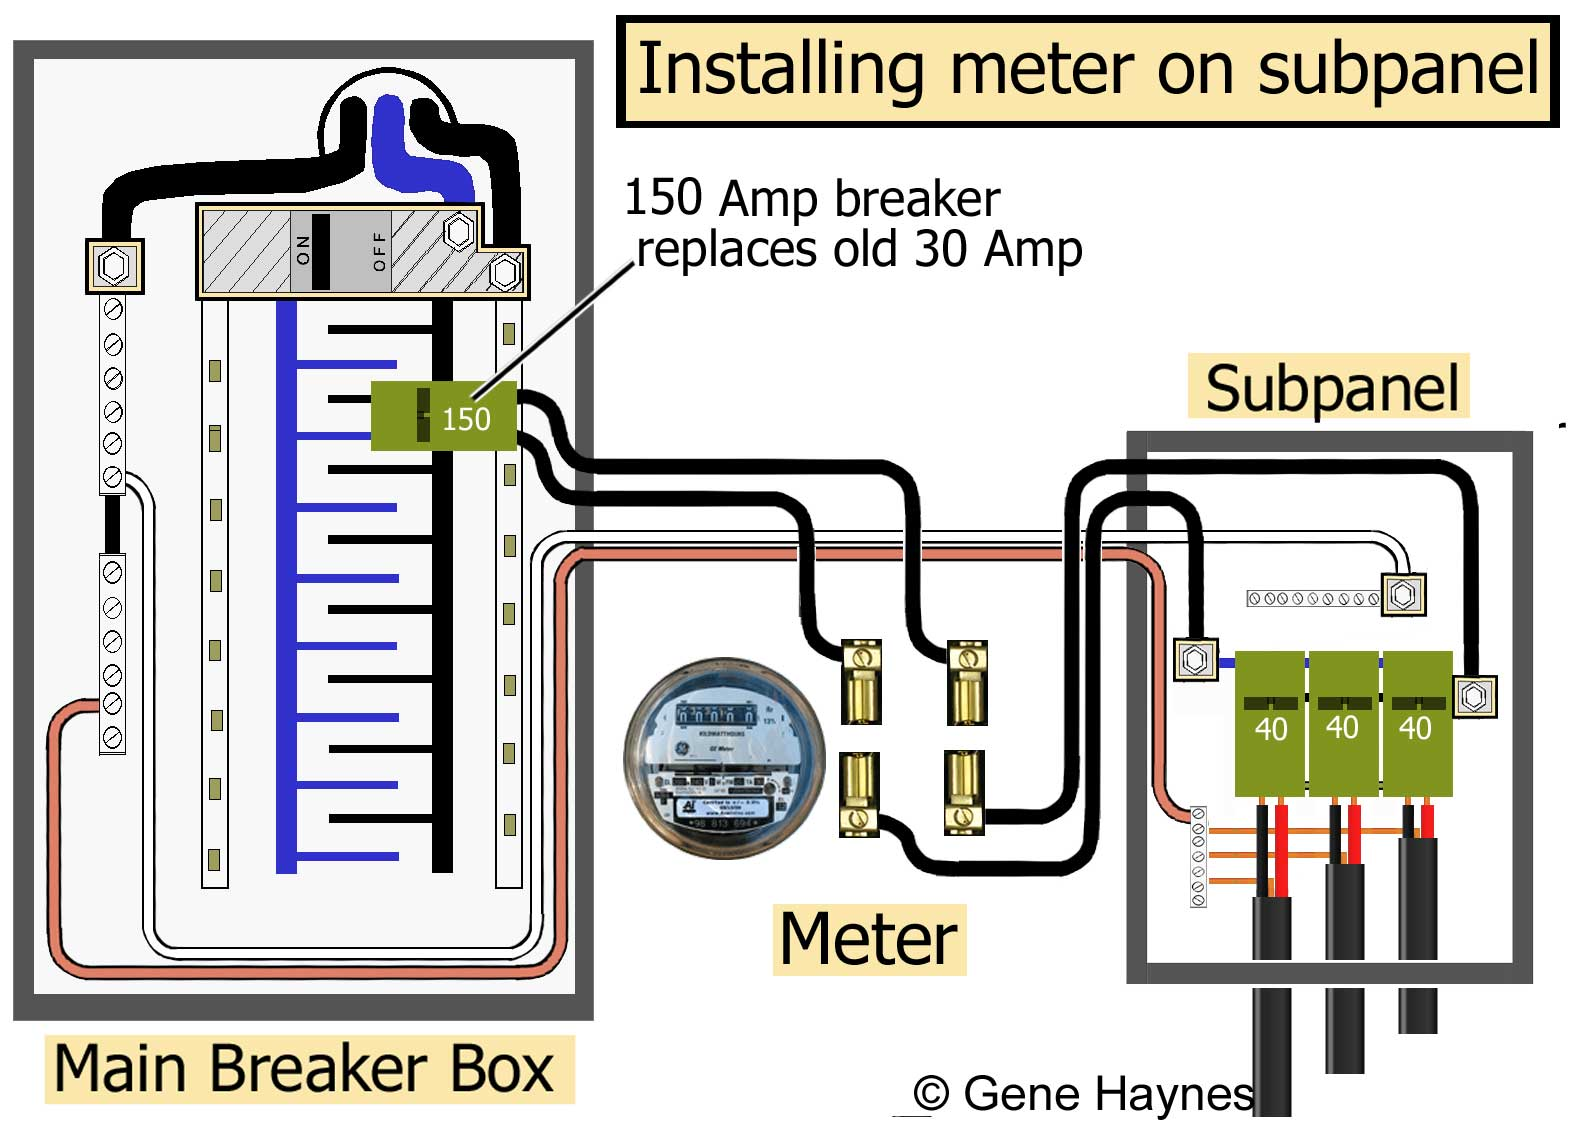 how to install a subpanel how to install main lug Sub Panel Breaker Box Wiring Diagram put electric meter on subpanel breaker box wiring diagram sub panel